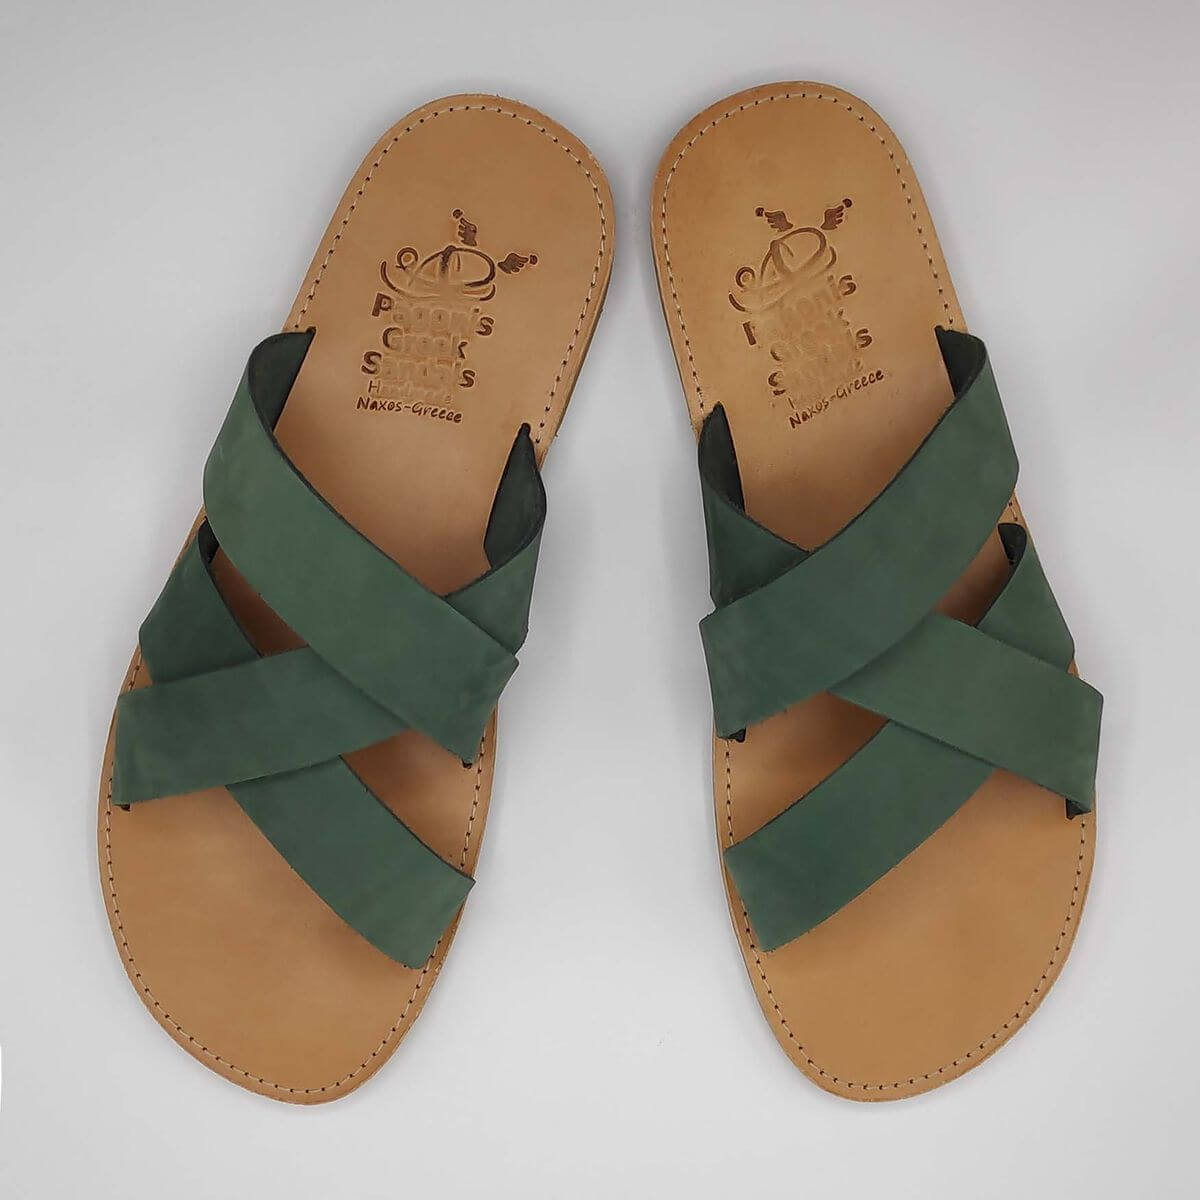 leather sandals for men green three straps criss cross top view - Avithos Men